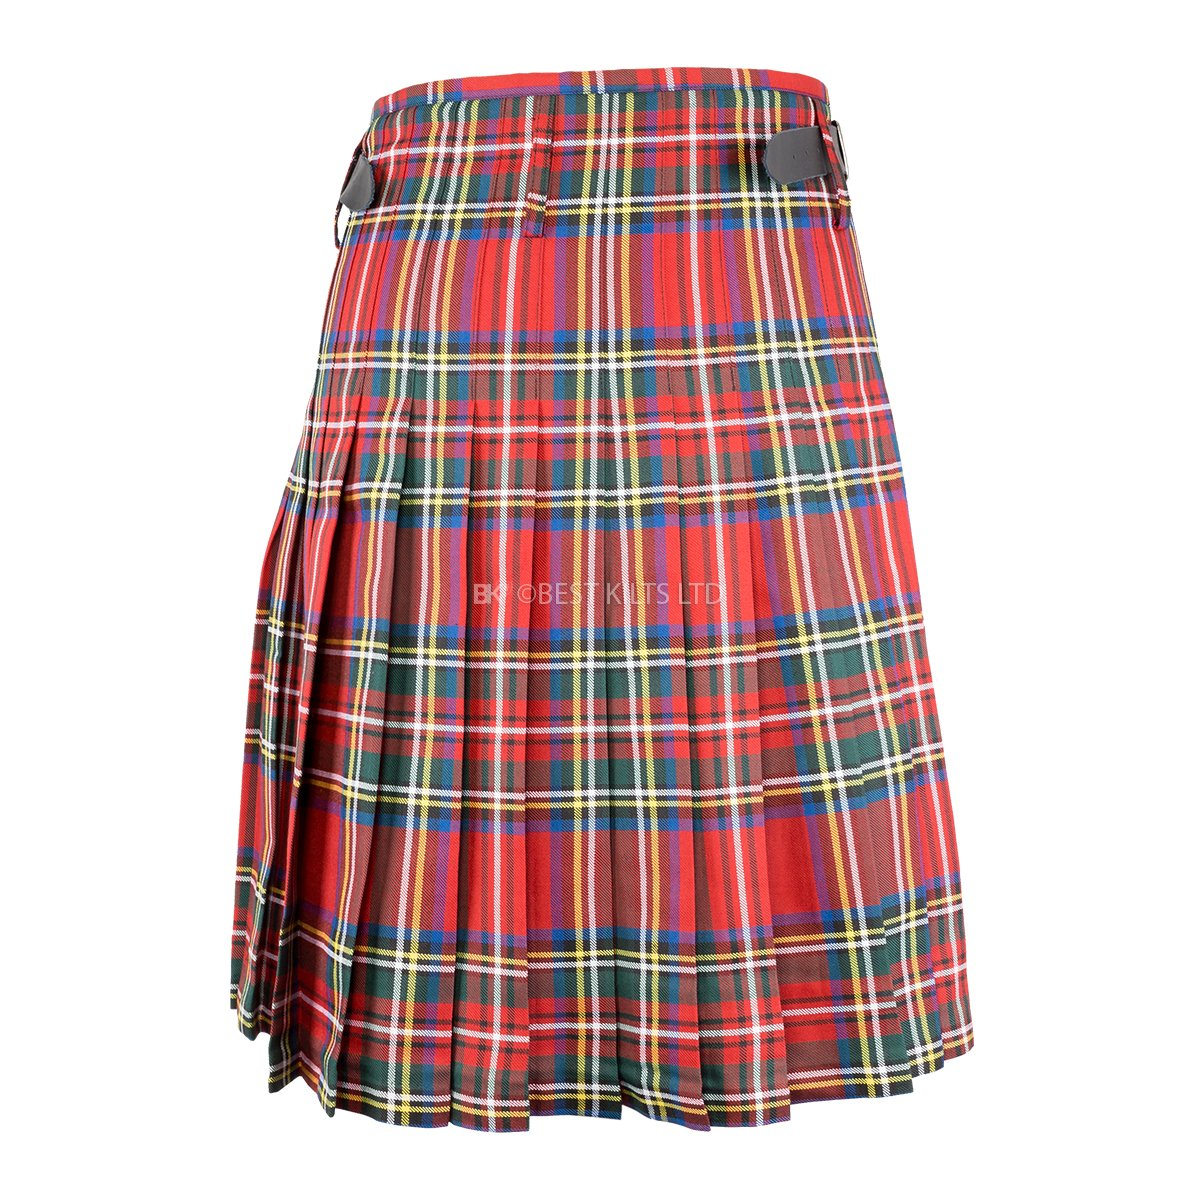 "Best Kilts Men's Scottish 5 Yard Party Kilt Royal Stewart 42""-44"" by Best Kilts (Image #3)"